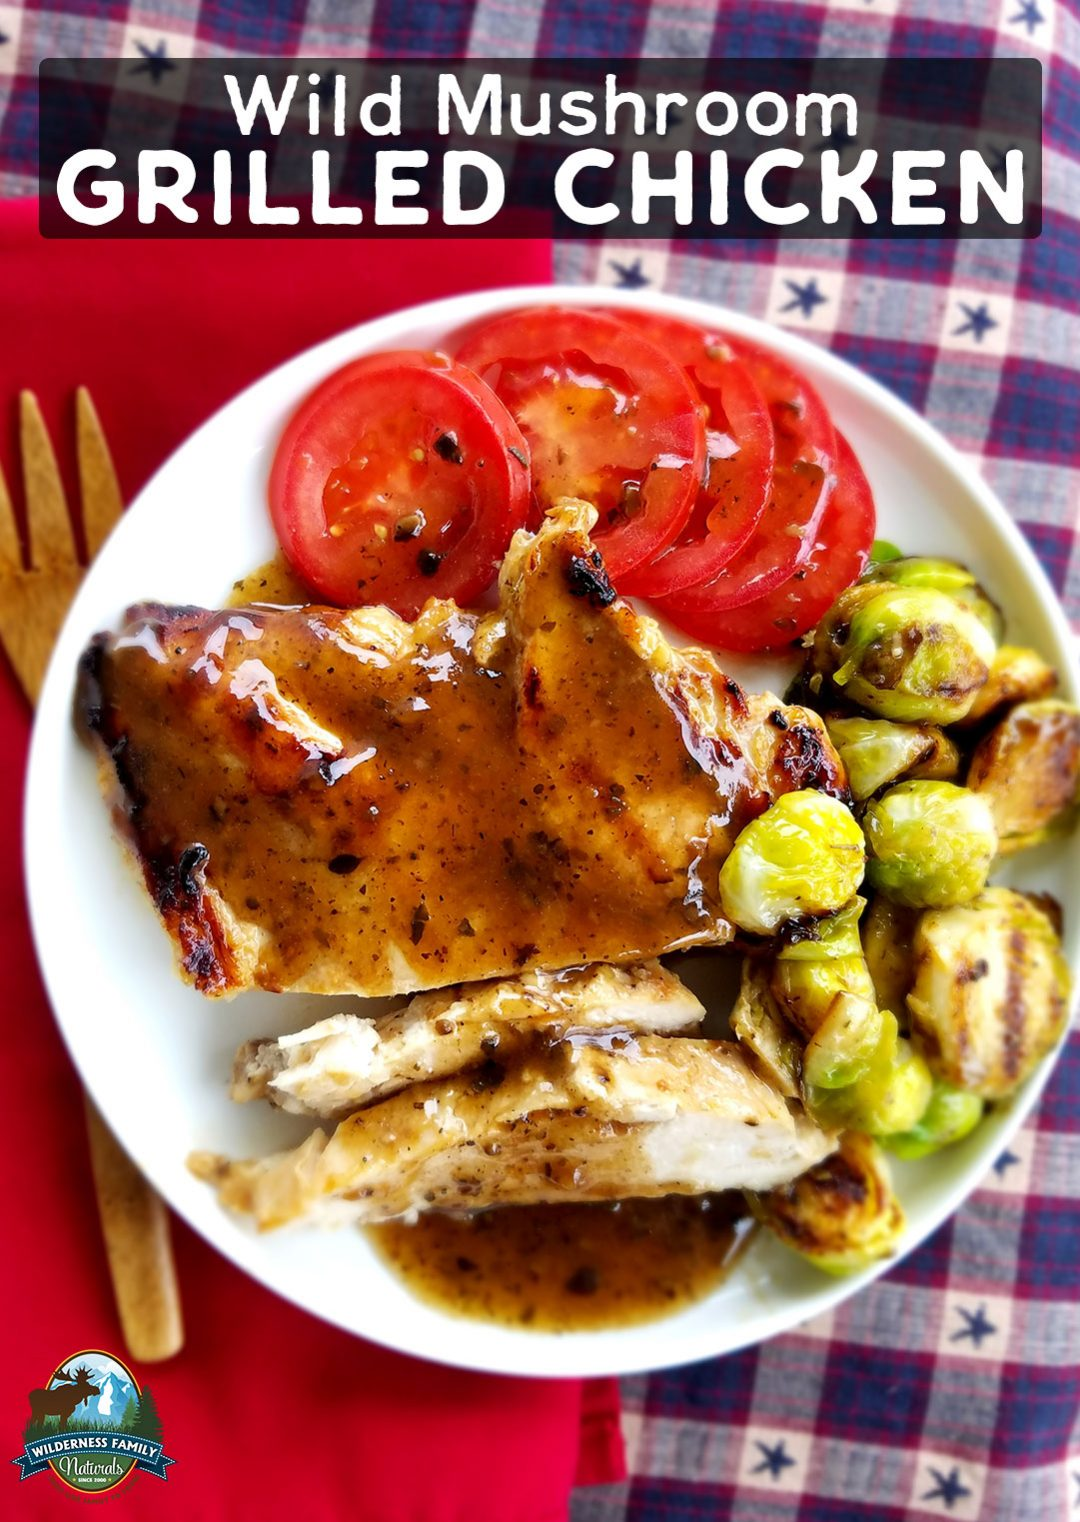 Wild Mushroom Grilled Chicken | For moist, flavorful chicken breasts, try this uncomplicated wild mushroom marinade! Then fire up the grill and keep the heat out of your kitchen with some juicy Wild Mushroom Grilled Chicken! | WildernessFamilyNaturals.com